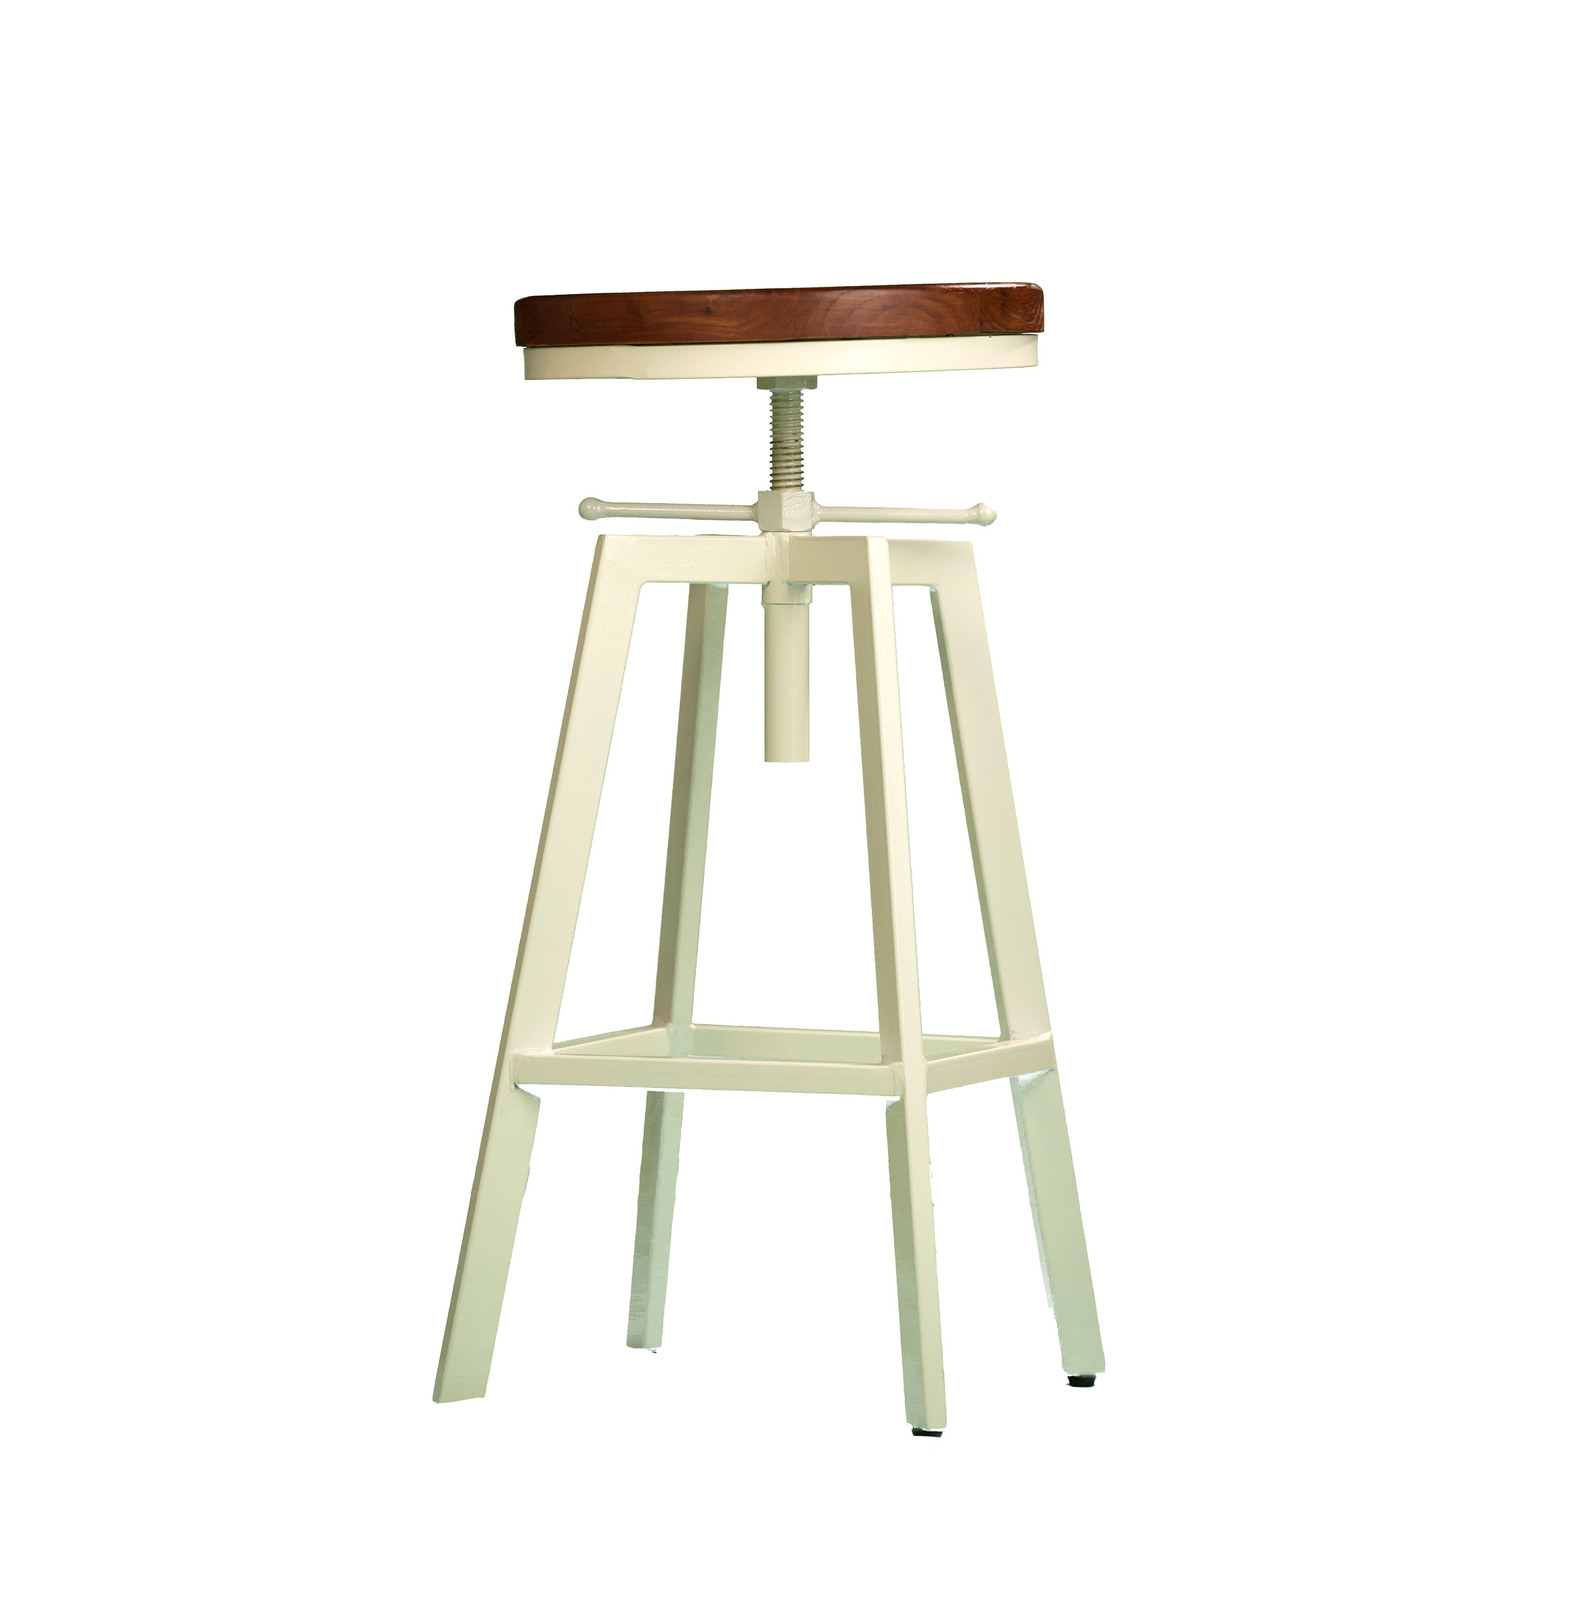 2x Metal Bar Stool NYX Kitchen Chair Swivel Adjustable  : ST 2xNYX WHT from www.ebay.com.au size 1575 x 1600 jpeg 107kB